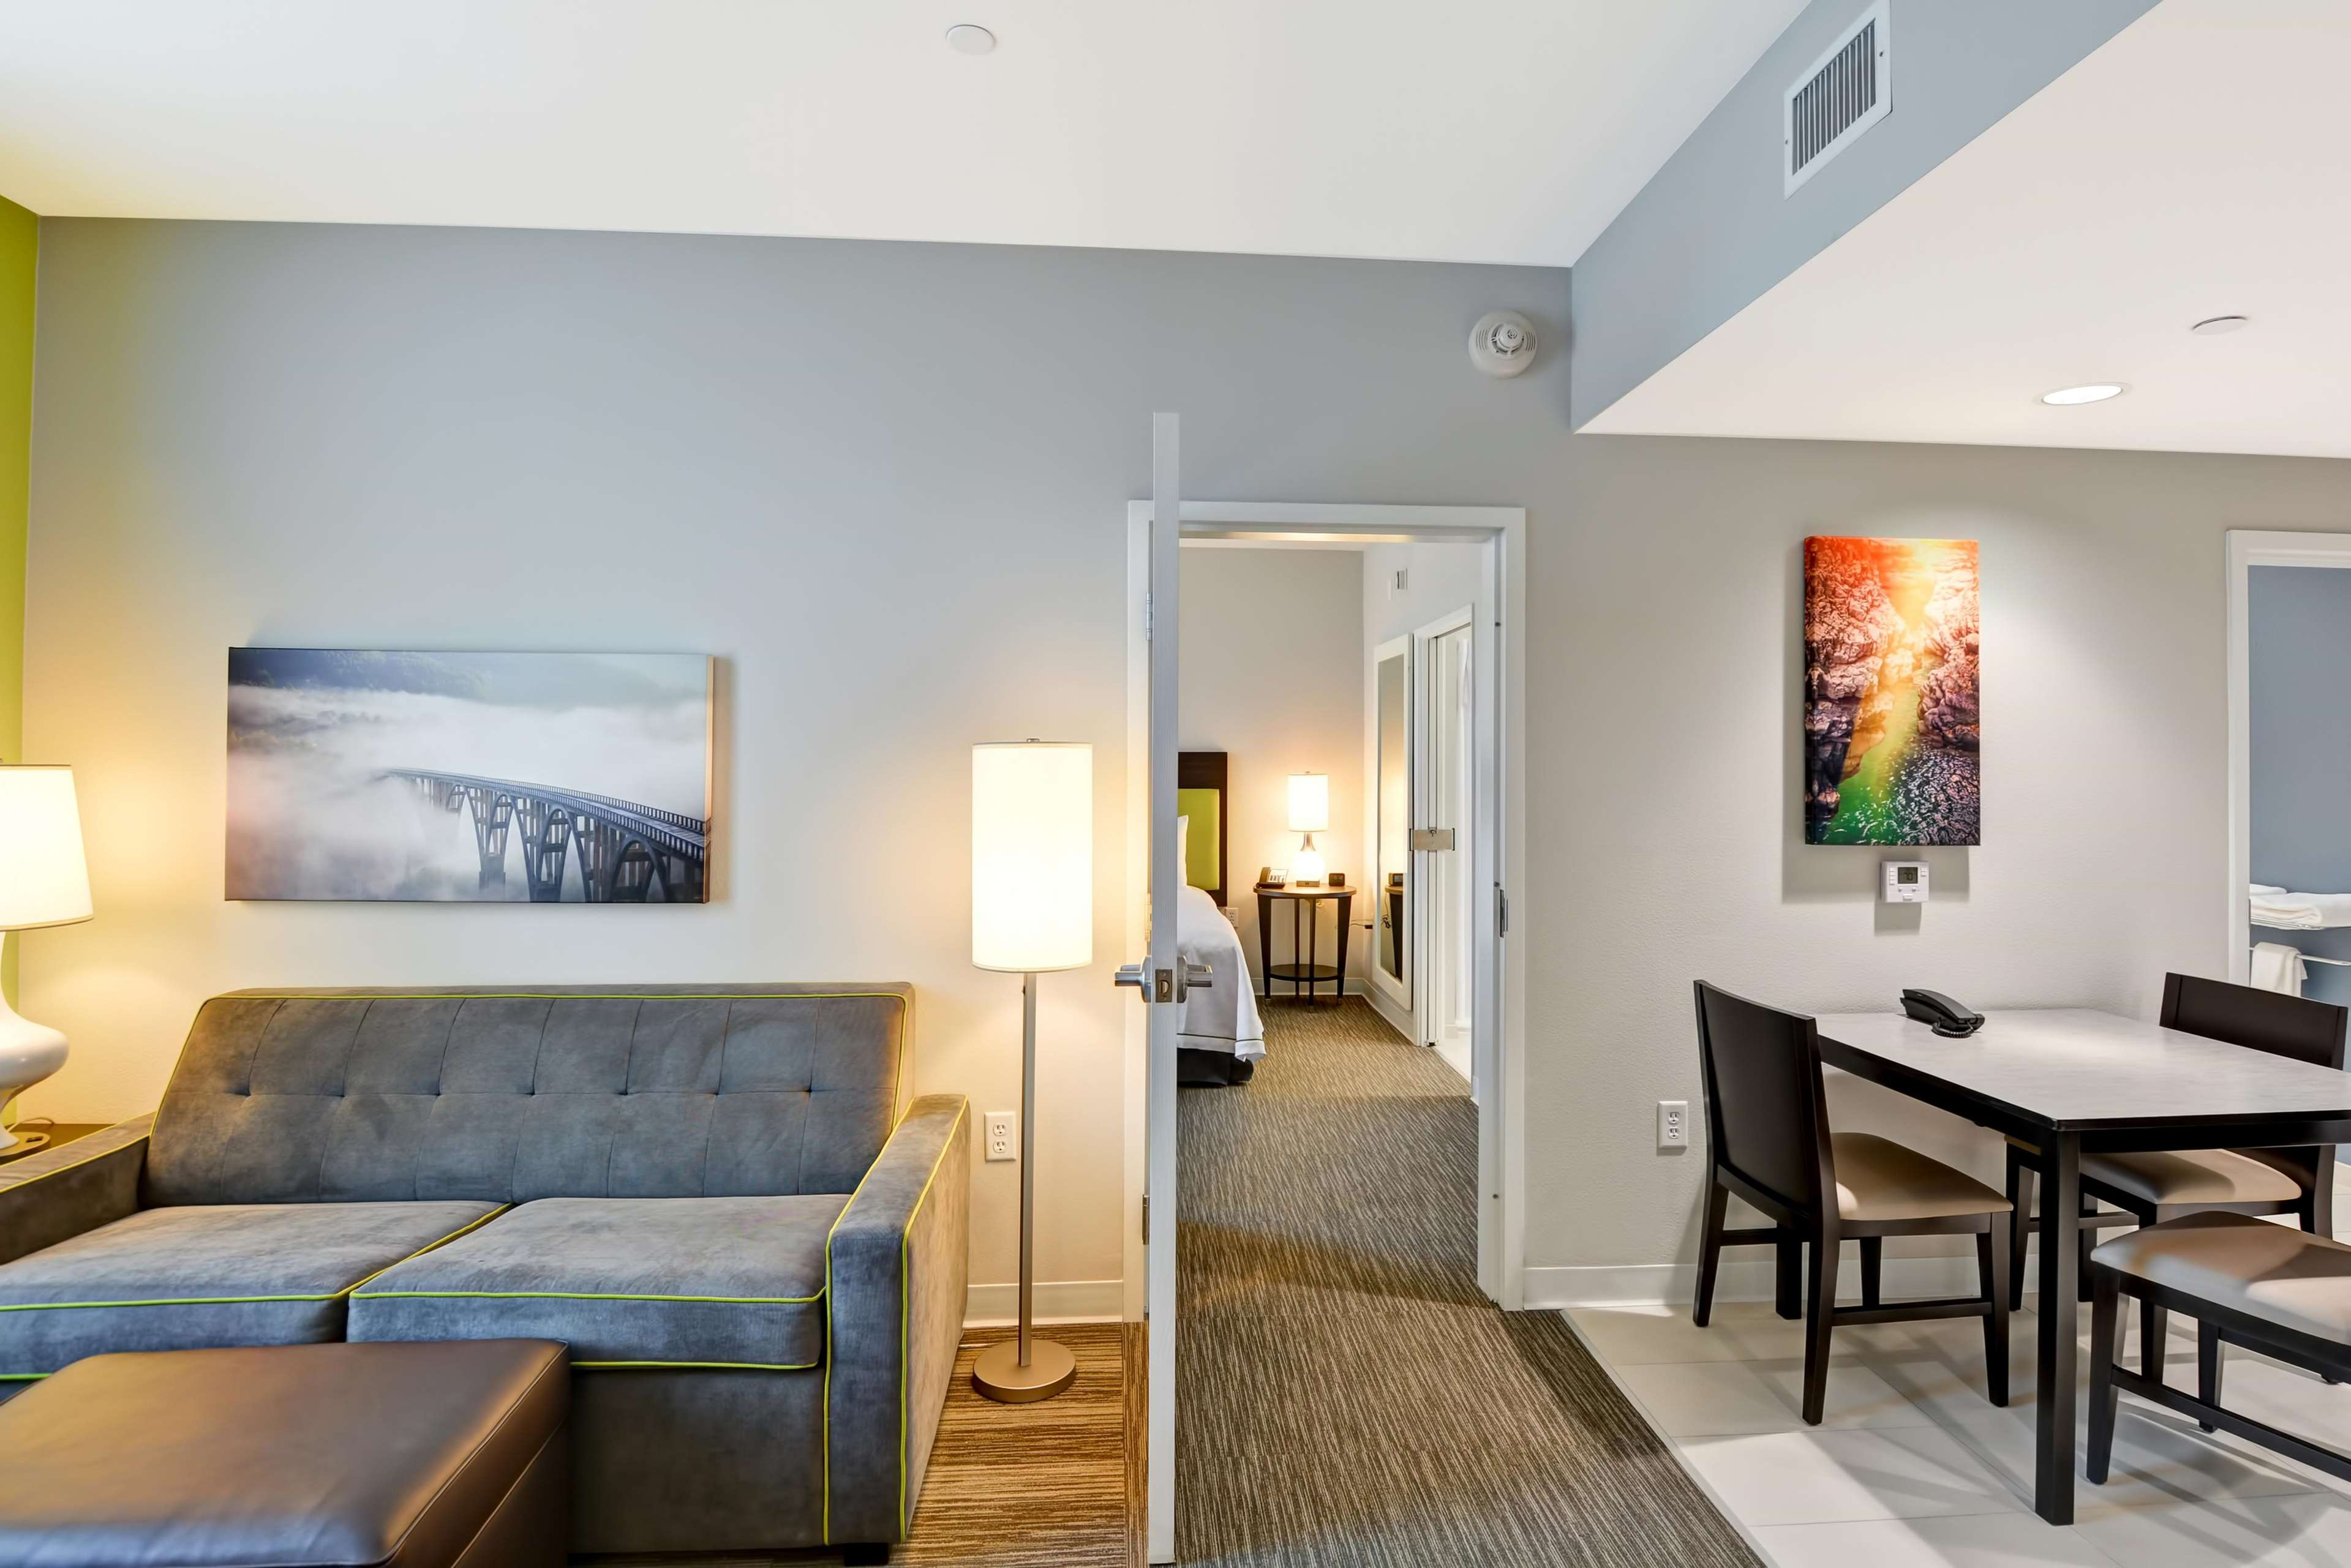 Fullsize Of Home2 Suites Philadelphia